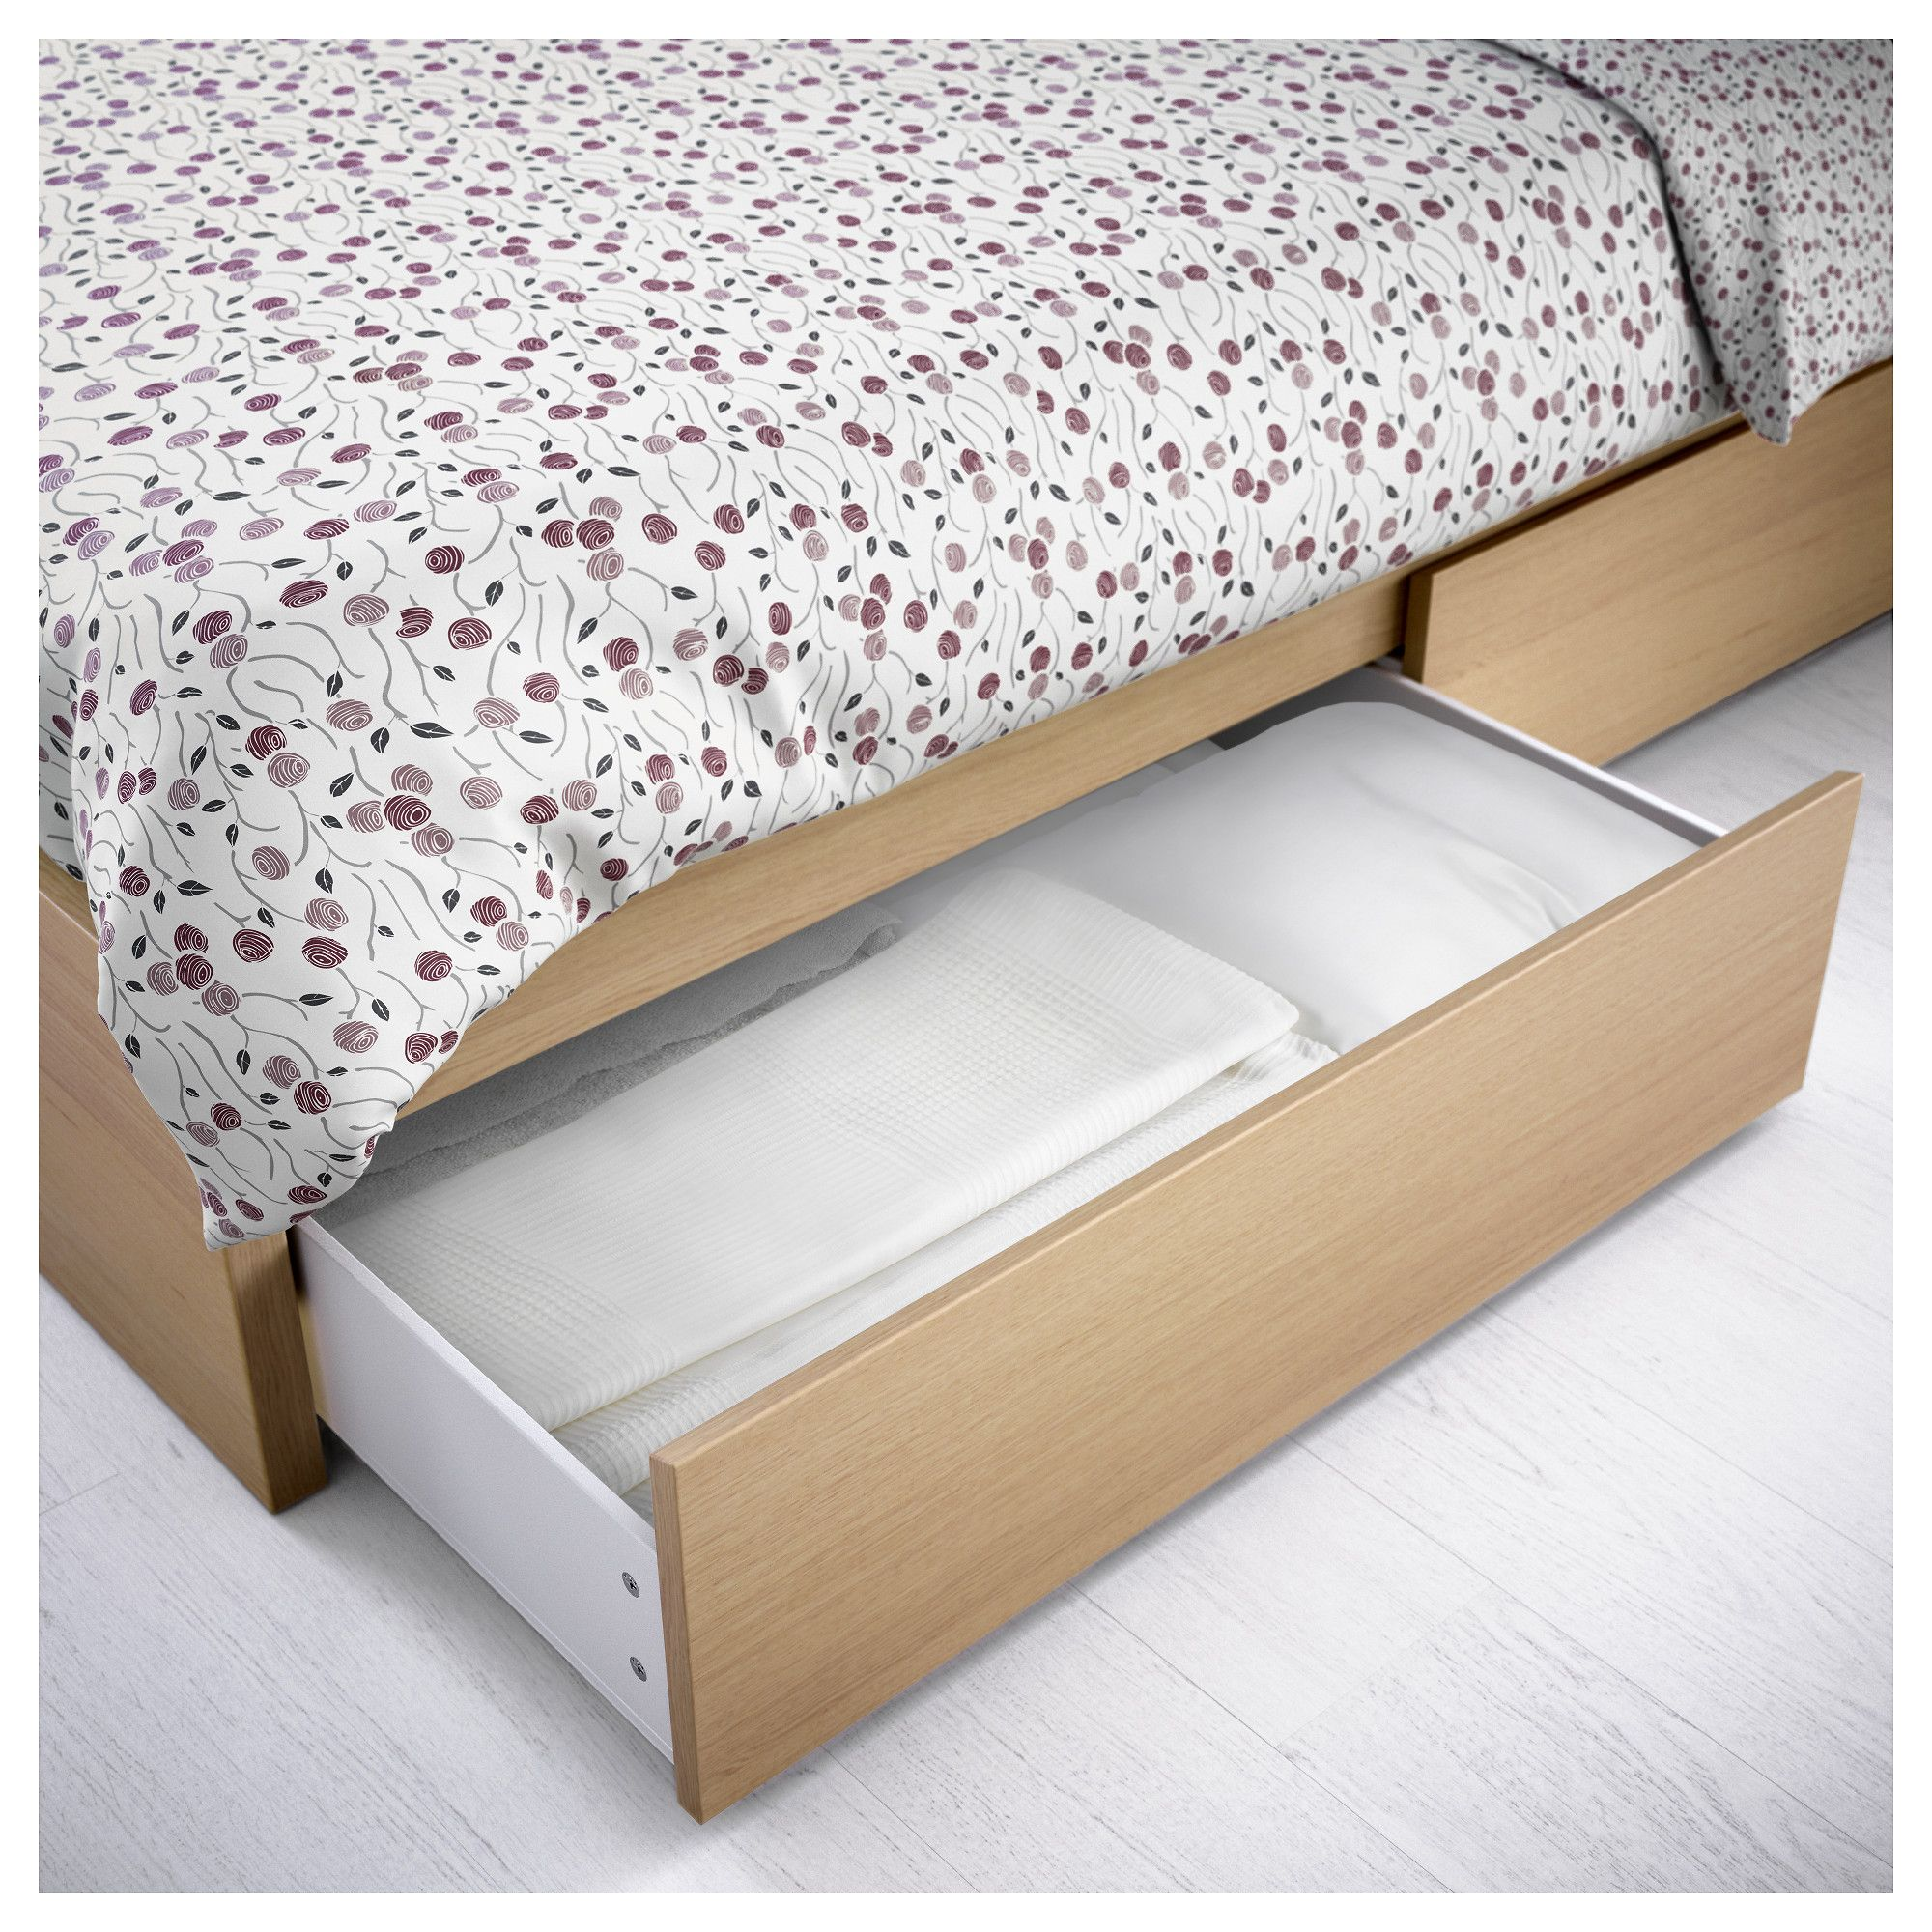 Ikea Malm Bed Storage Part - 15: IKEA - MALM High bed frame-2 storage boxes white stained oak veneer